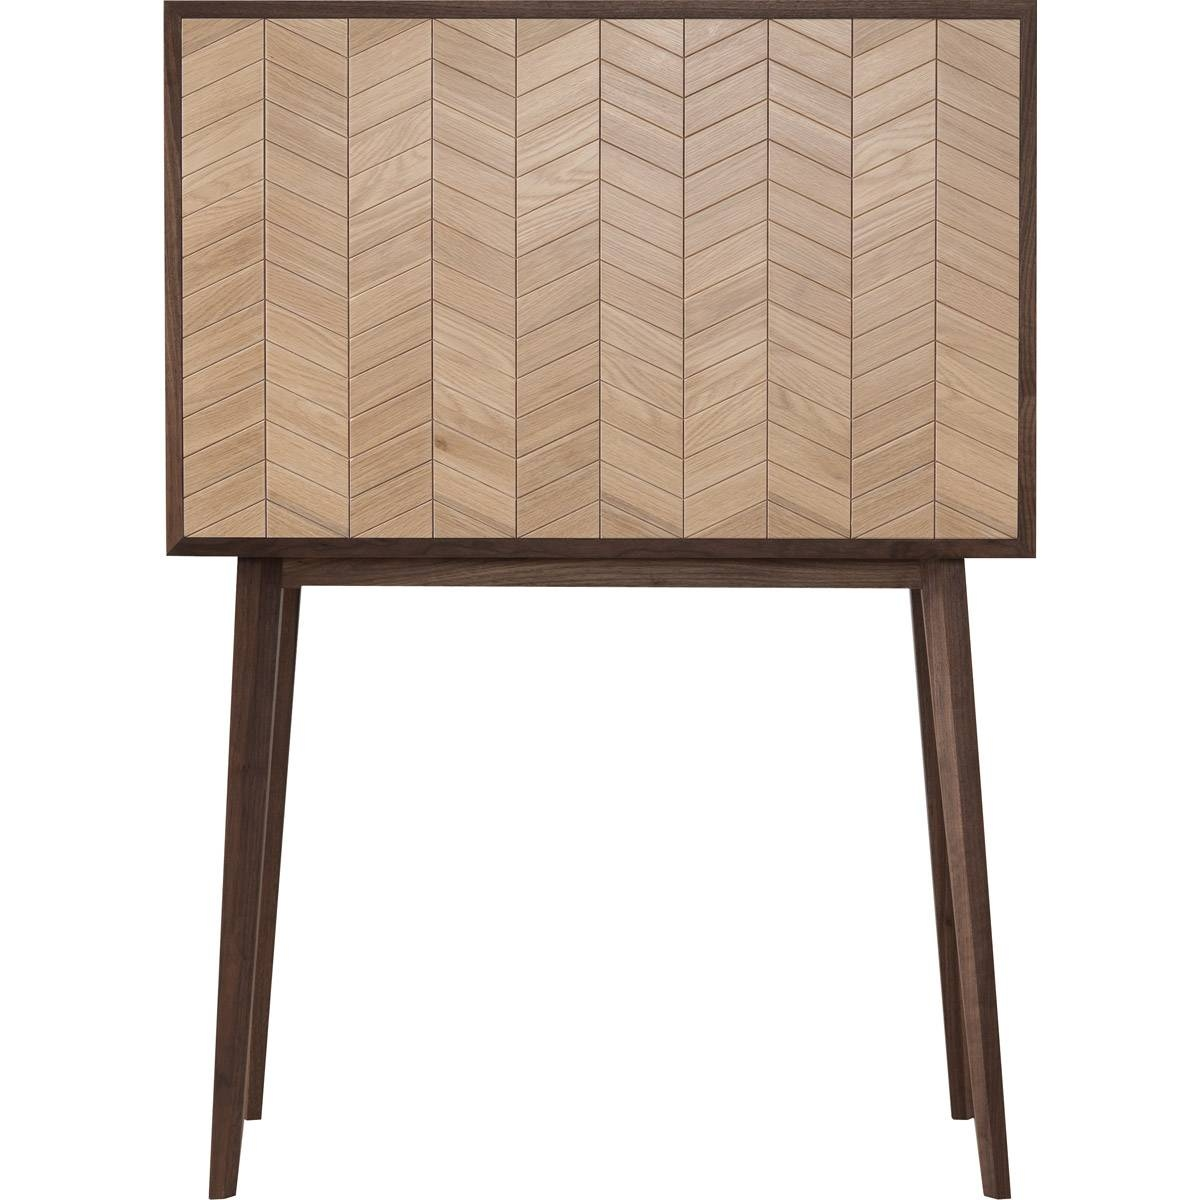 Mister Bar/sideboard/desk | Wewood | Horne Throughout Desk Sideboards (#11 of 15)